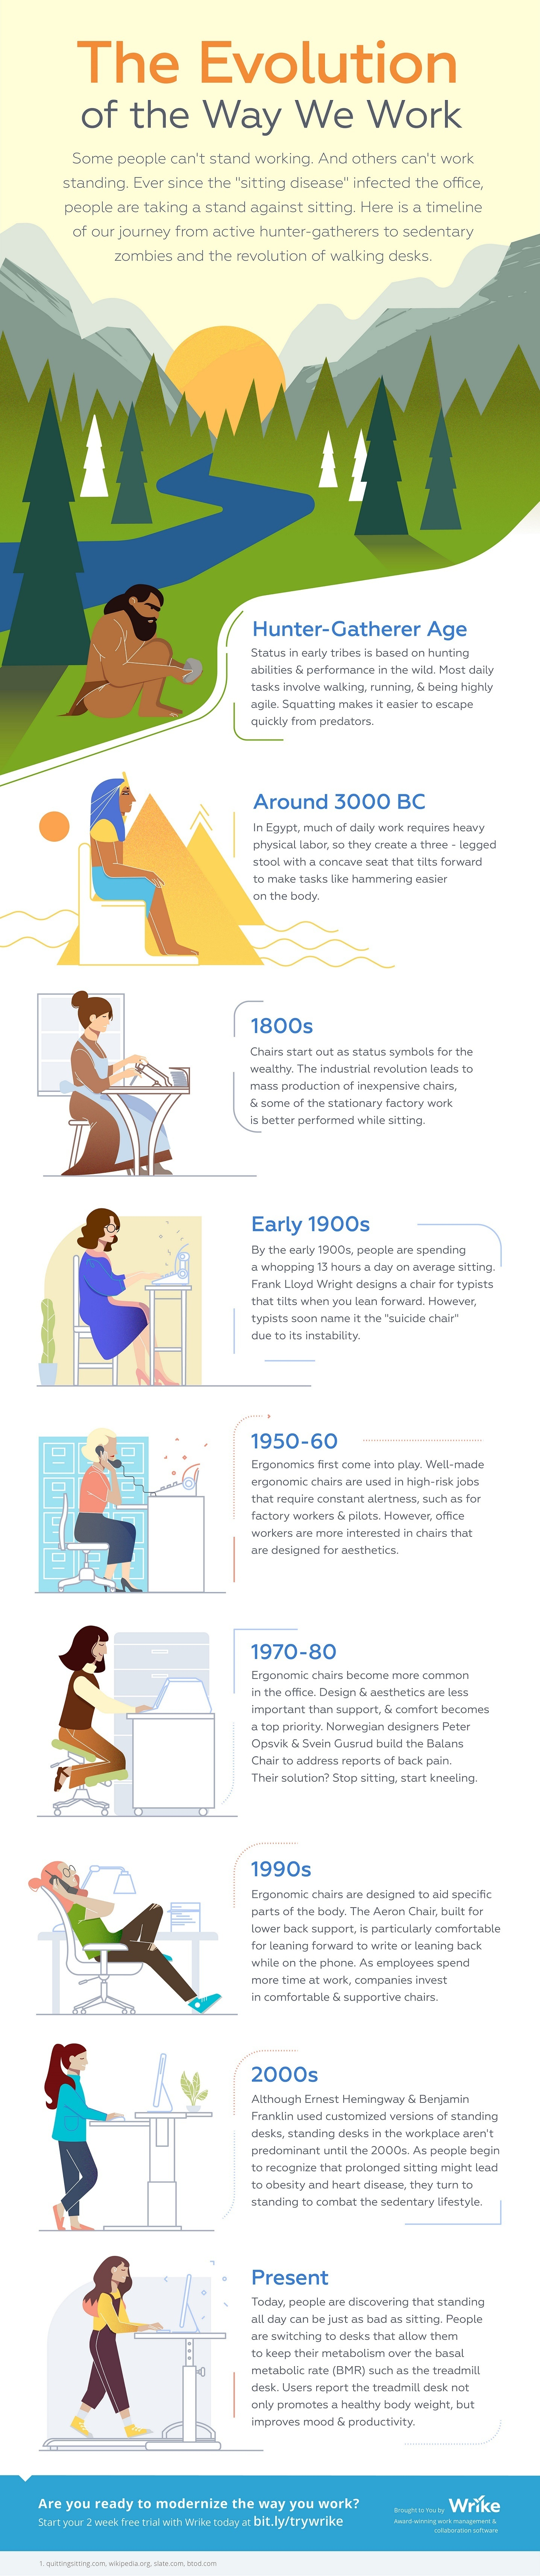 The Evolution of the Way We Work Infographic